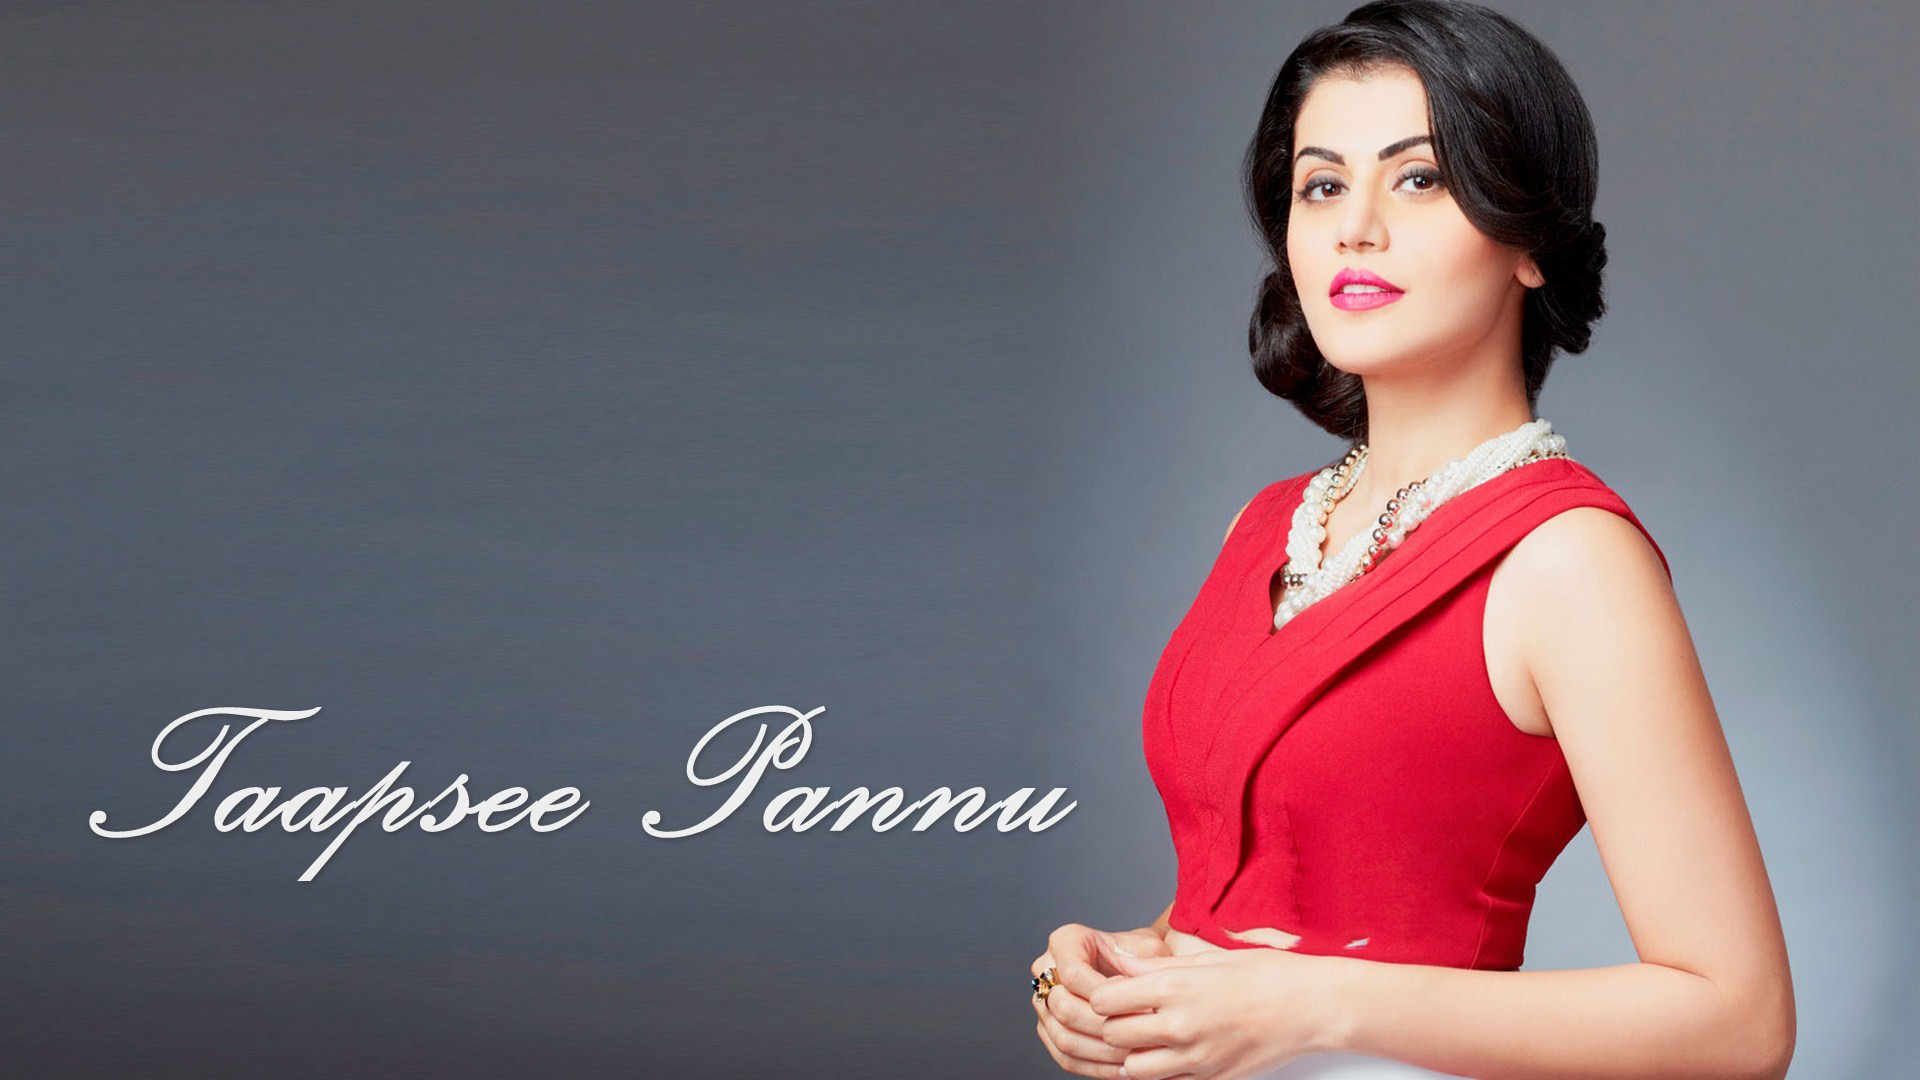 1920x1080 - Tapsee pannu Wallpapers 28